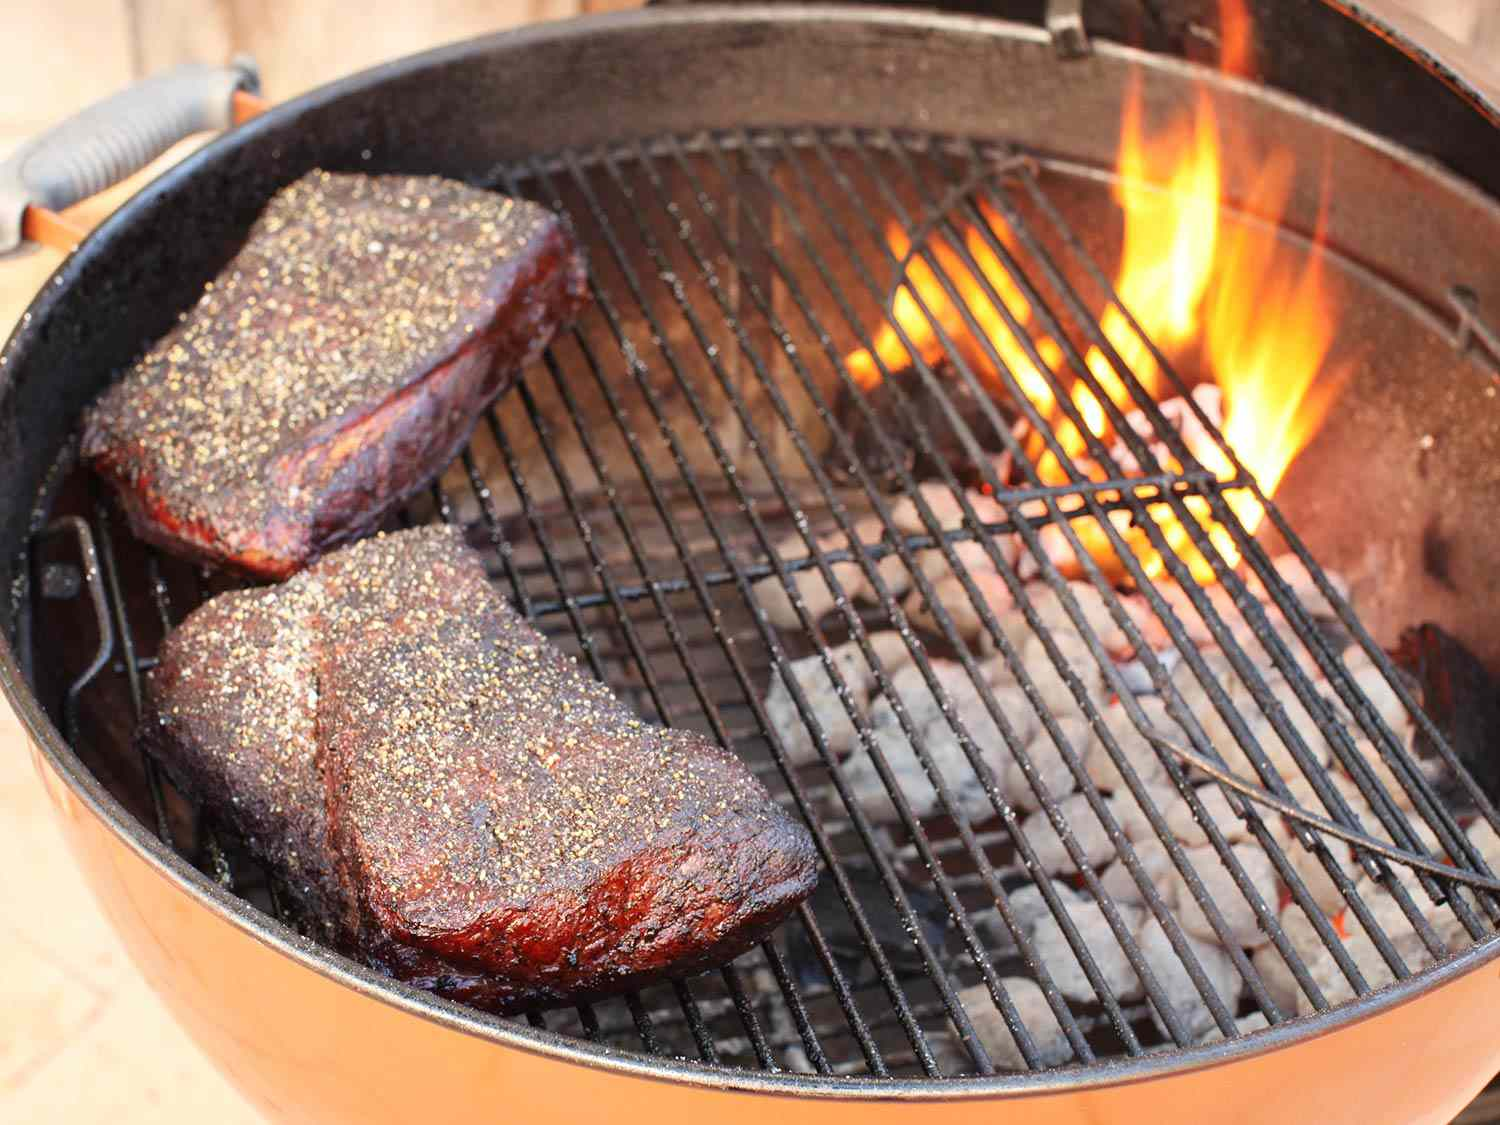 Brisket halves cooking on a charcoal grill